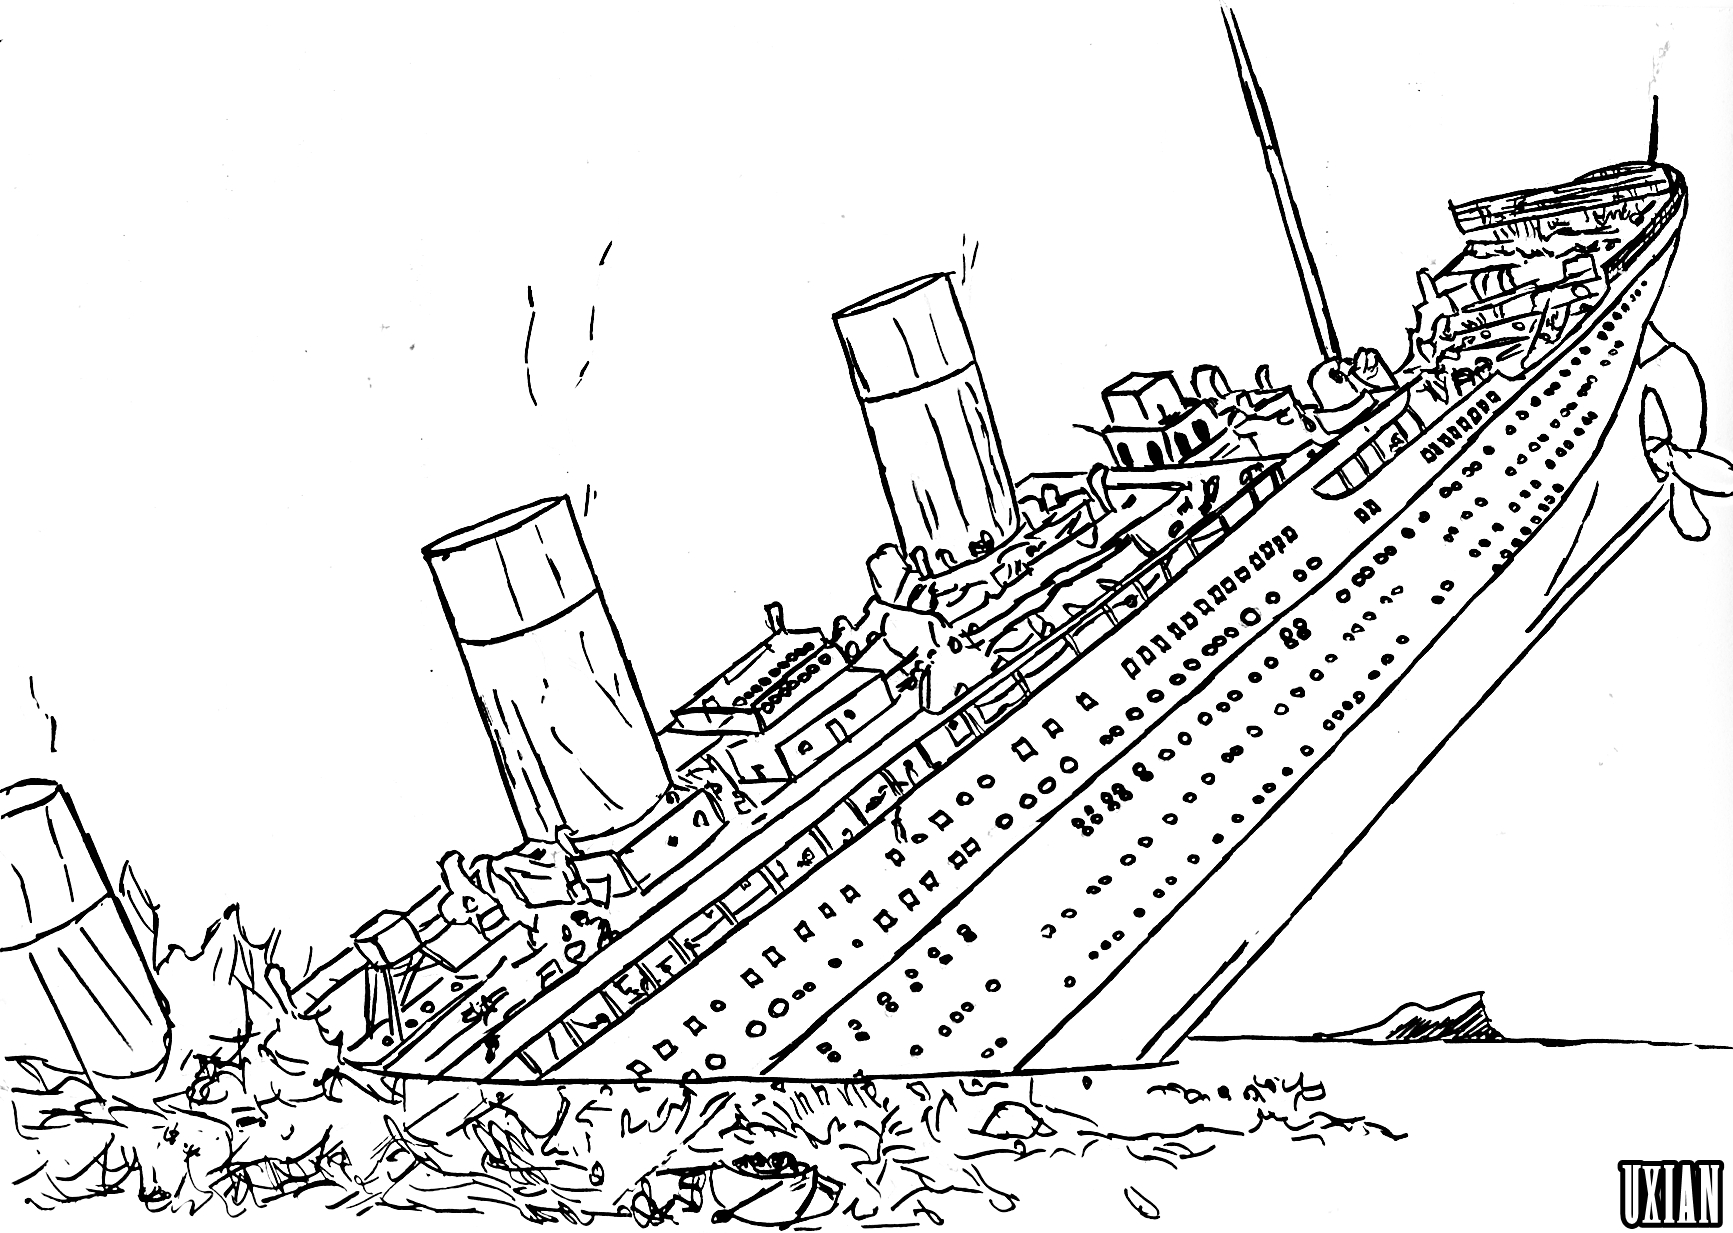 Coloring pages titanic ~ Titanic sinking by UxianXIII on DeviantArt